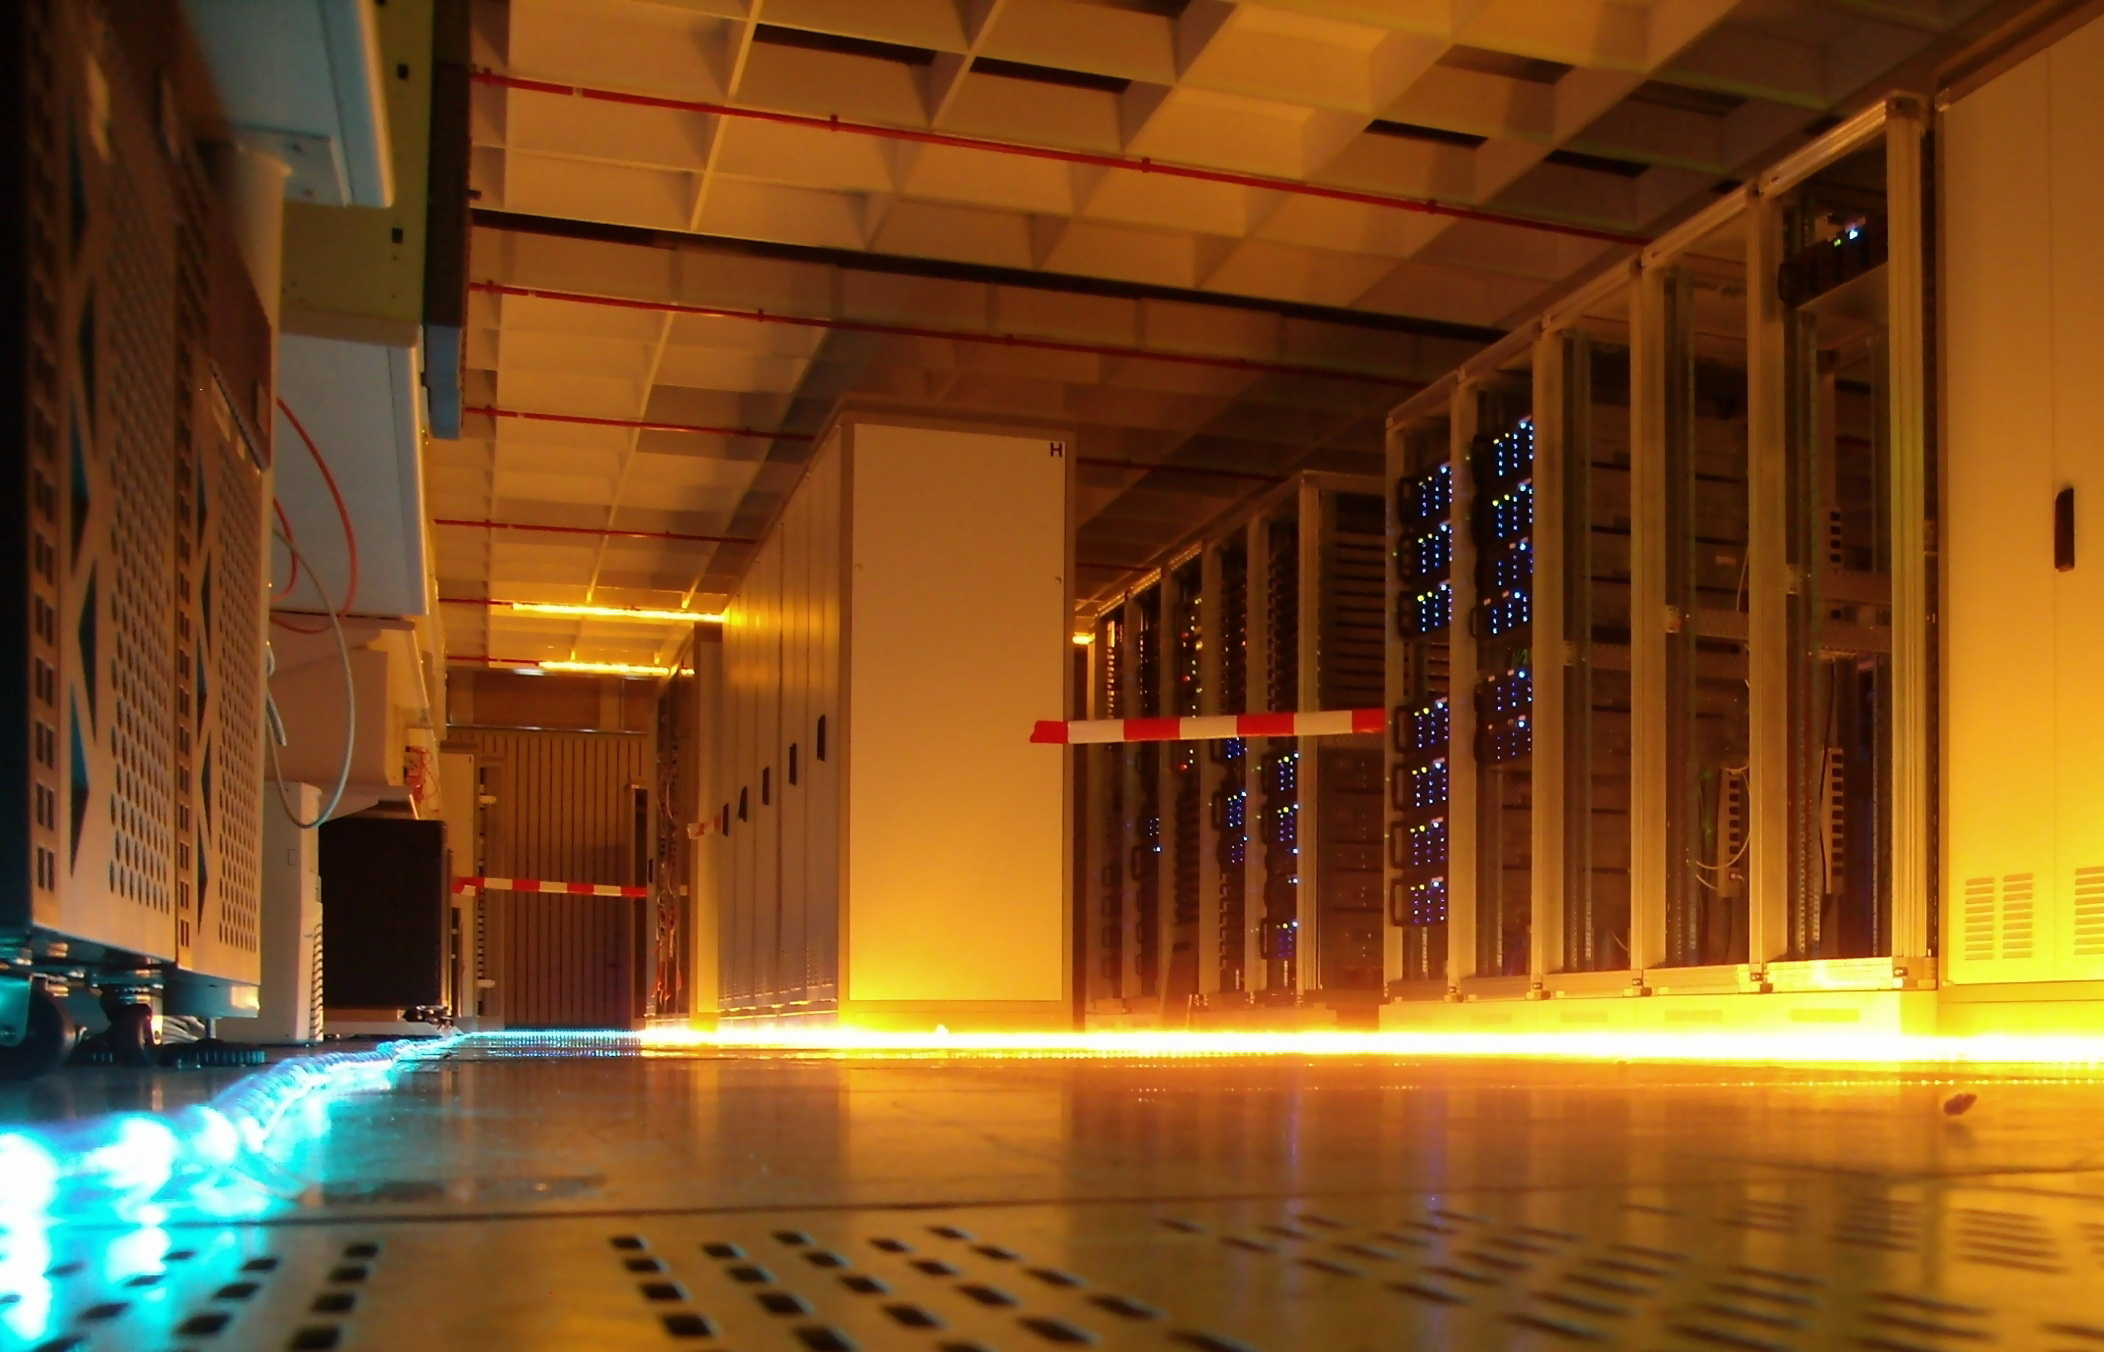 EU-US data transfers: Why Safe Harbour 2.0 may just be an empty shell